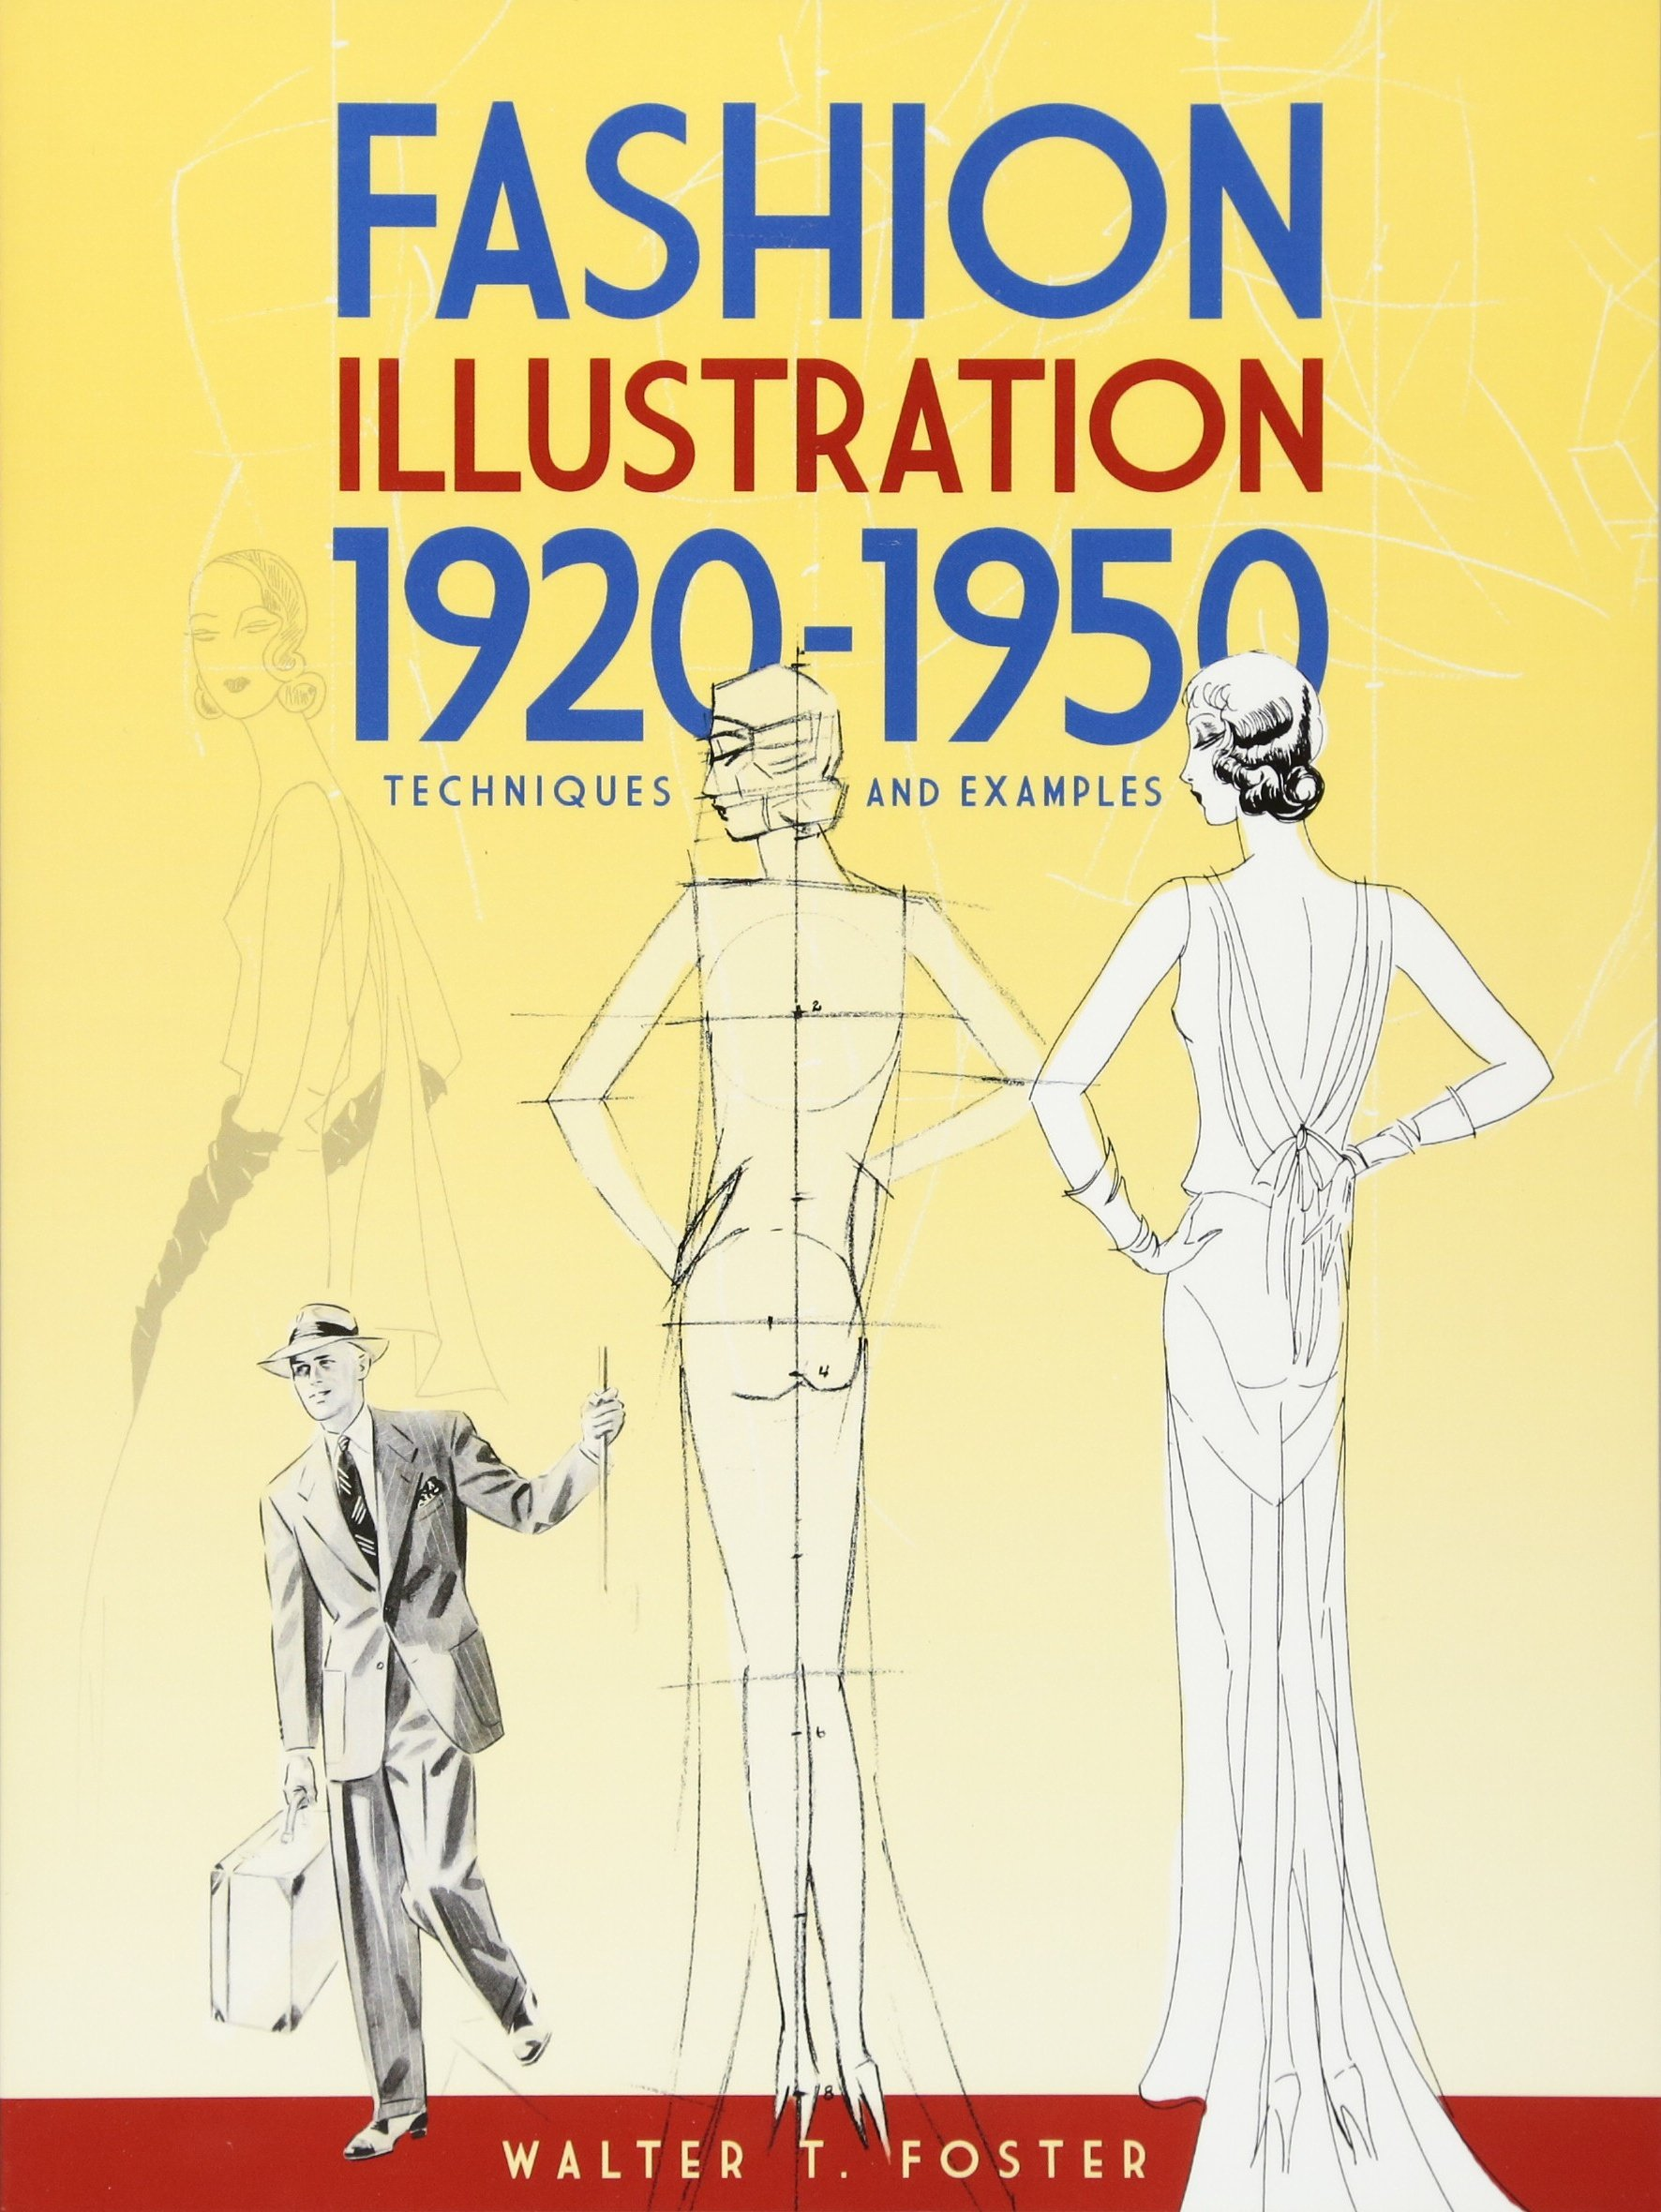 Fashion illustration 1920 1950 techniques and examples dover art fashion illustration 1920 1950 techniques and examples dover art instruction walter t foster 0800759474714 amazon books fandeluxe Choice Image